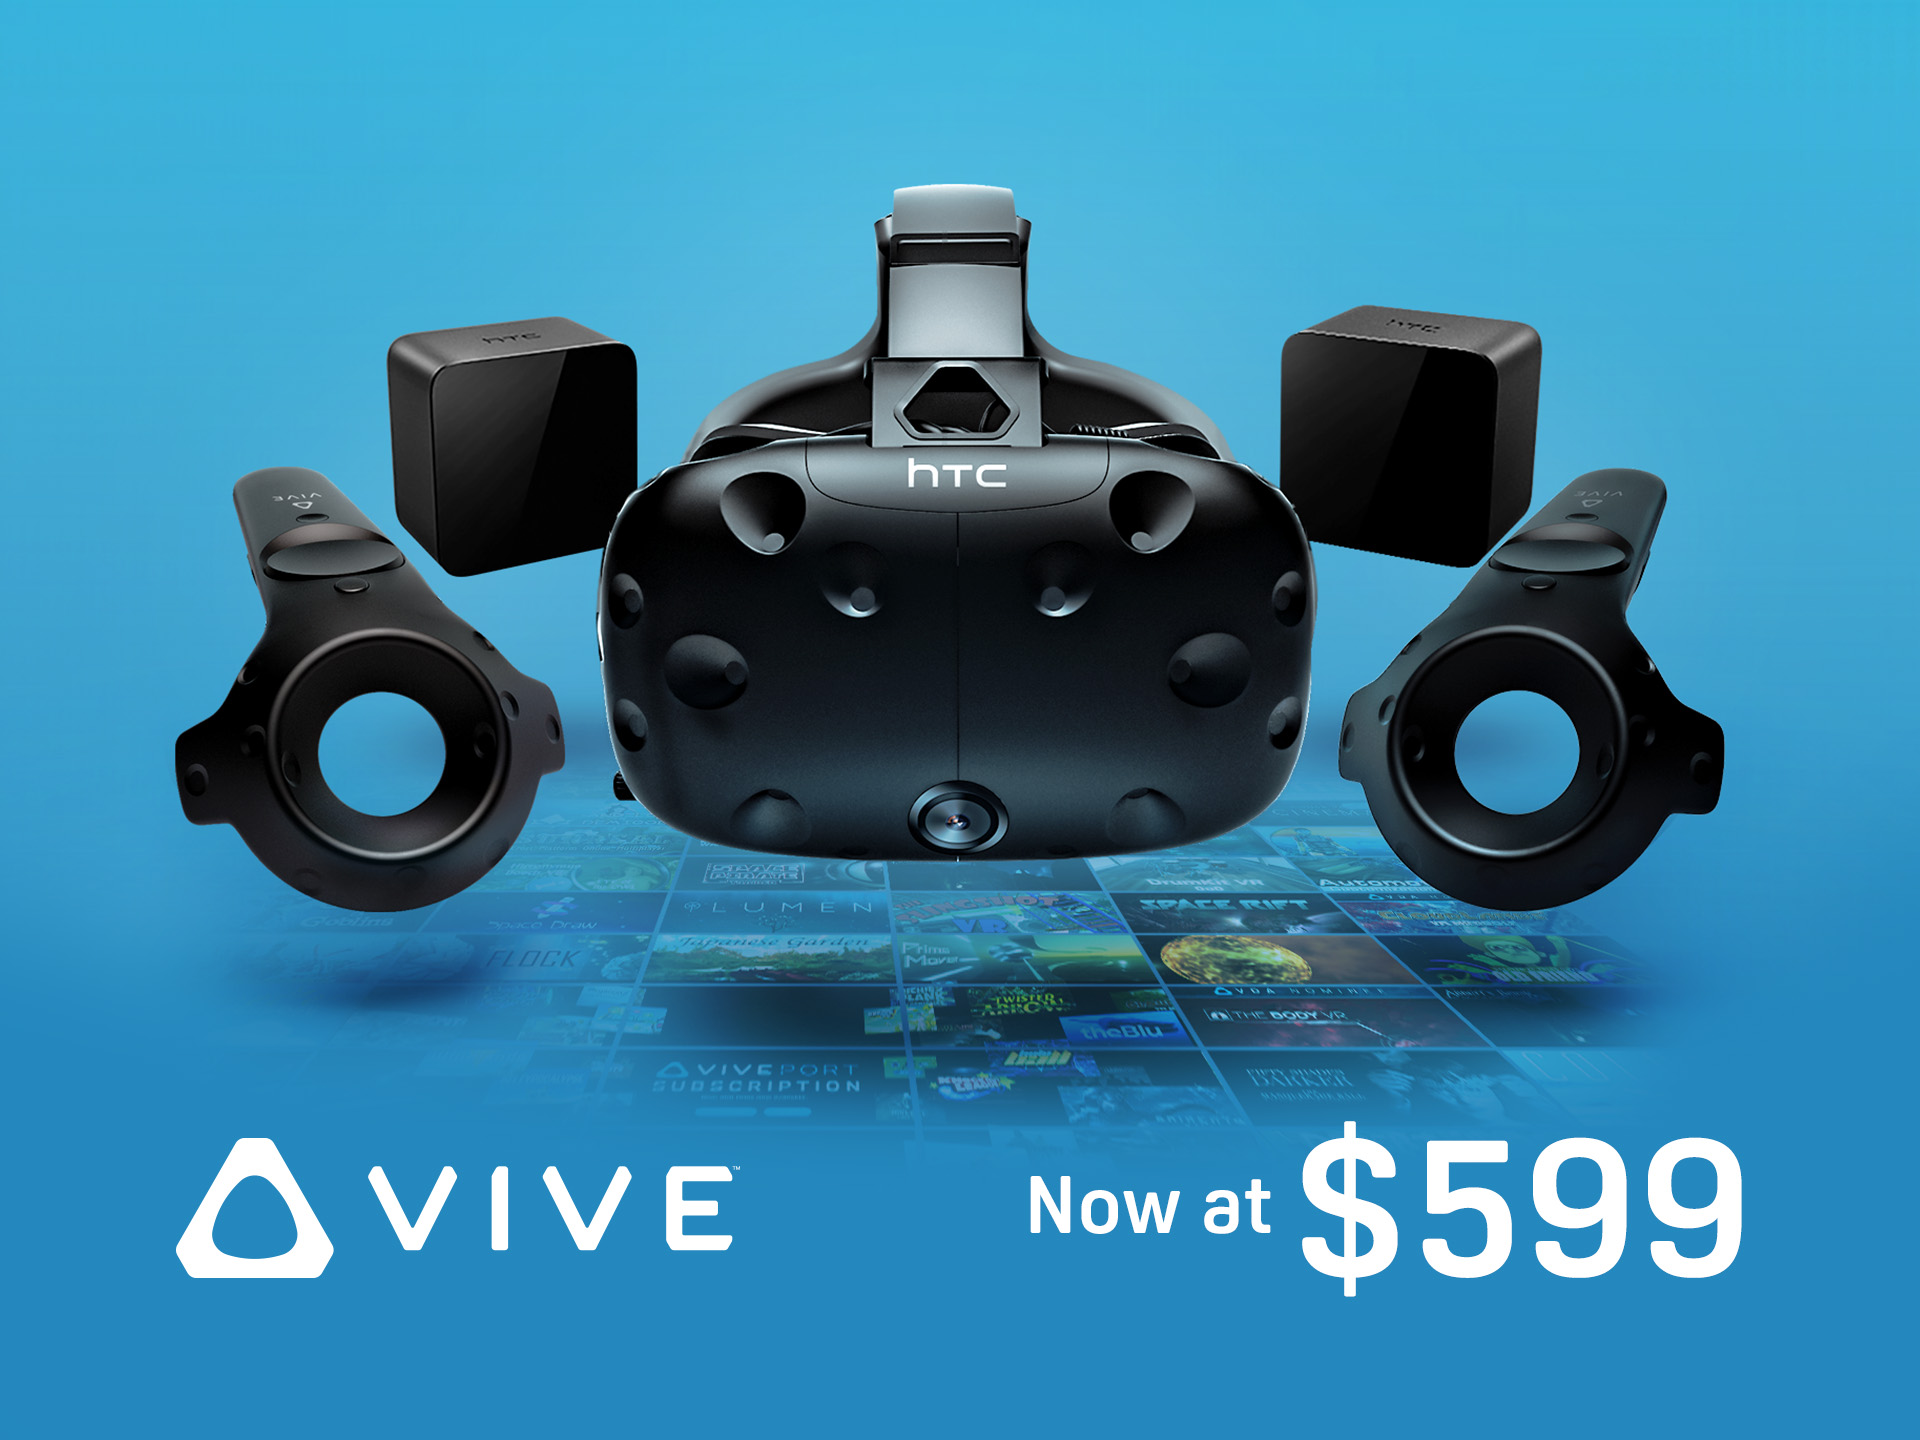 HTC Vive price drops to $599